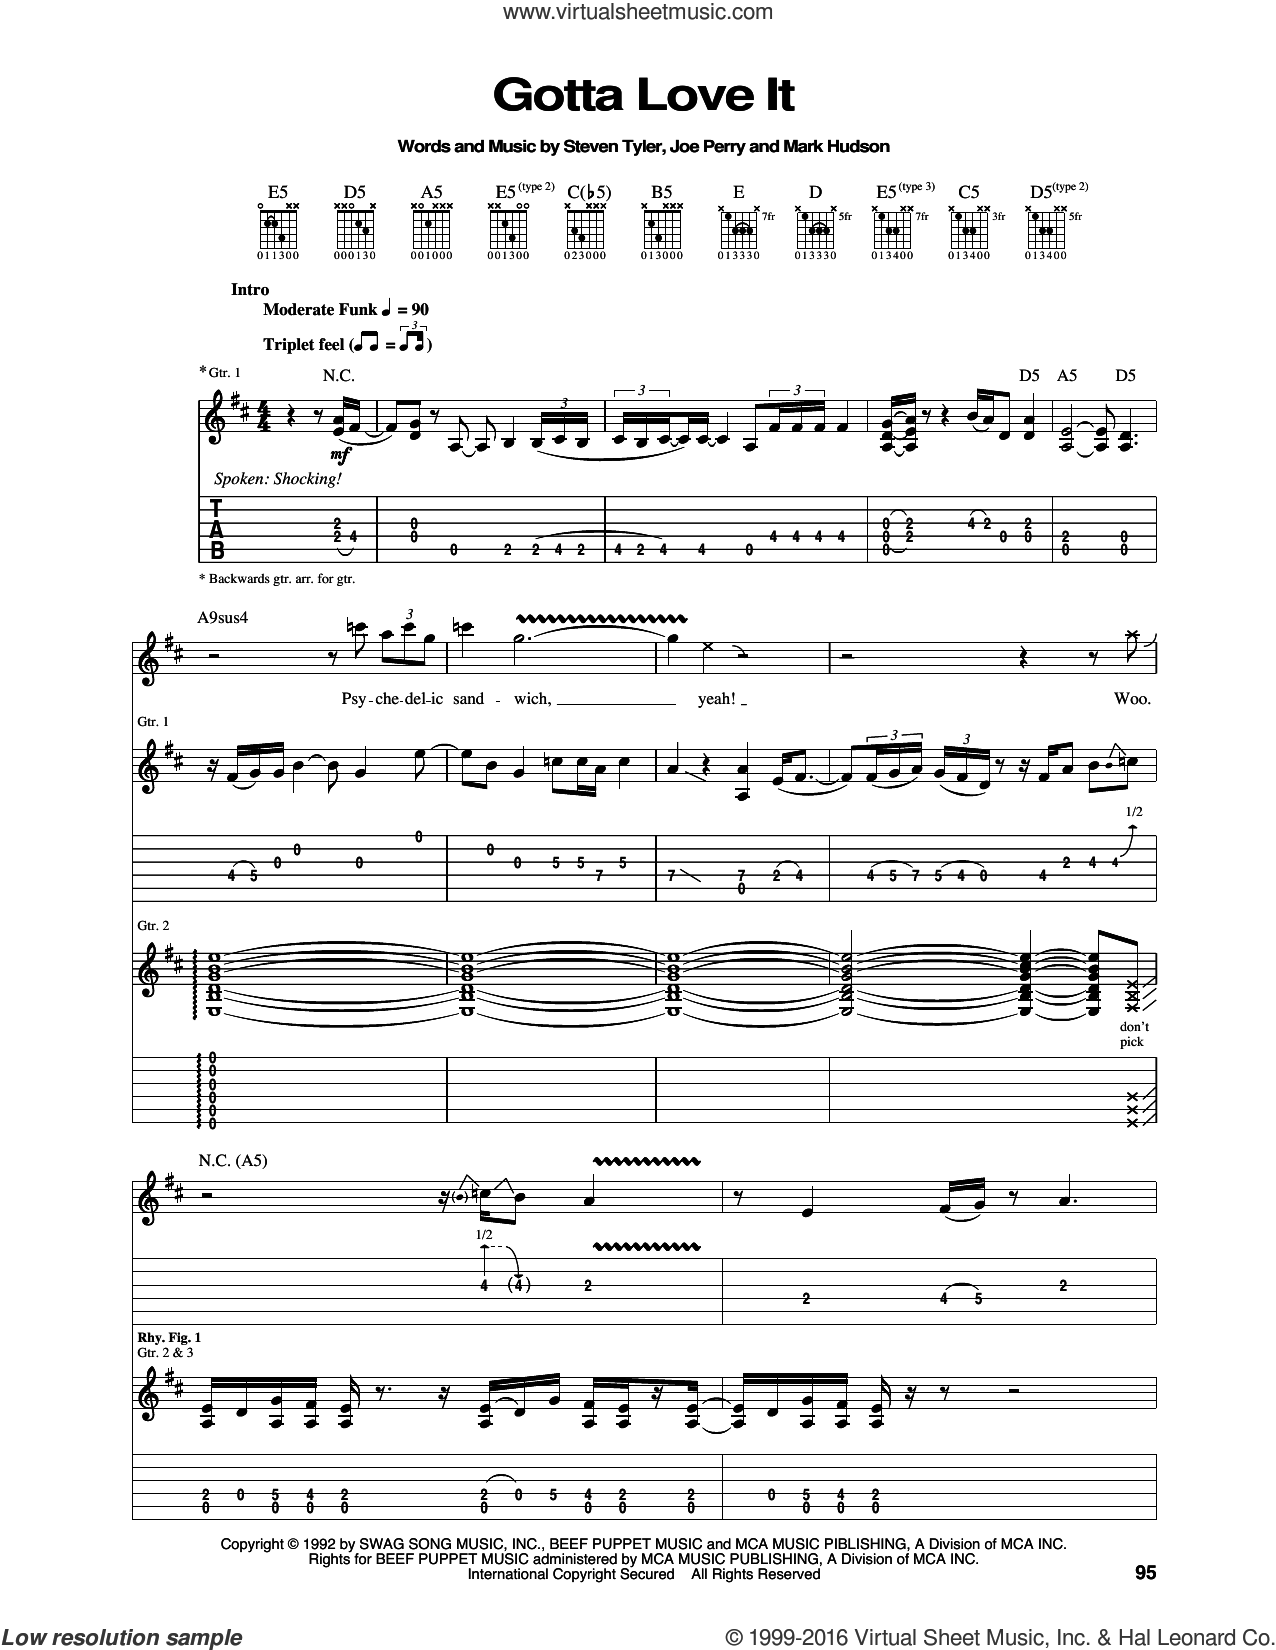 Gotta Love It sheet music for guitar (tablature) by Aerosmith, Joe Perry, Mark Hudson and Steven Tyler, intermediate skill level